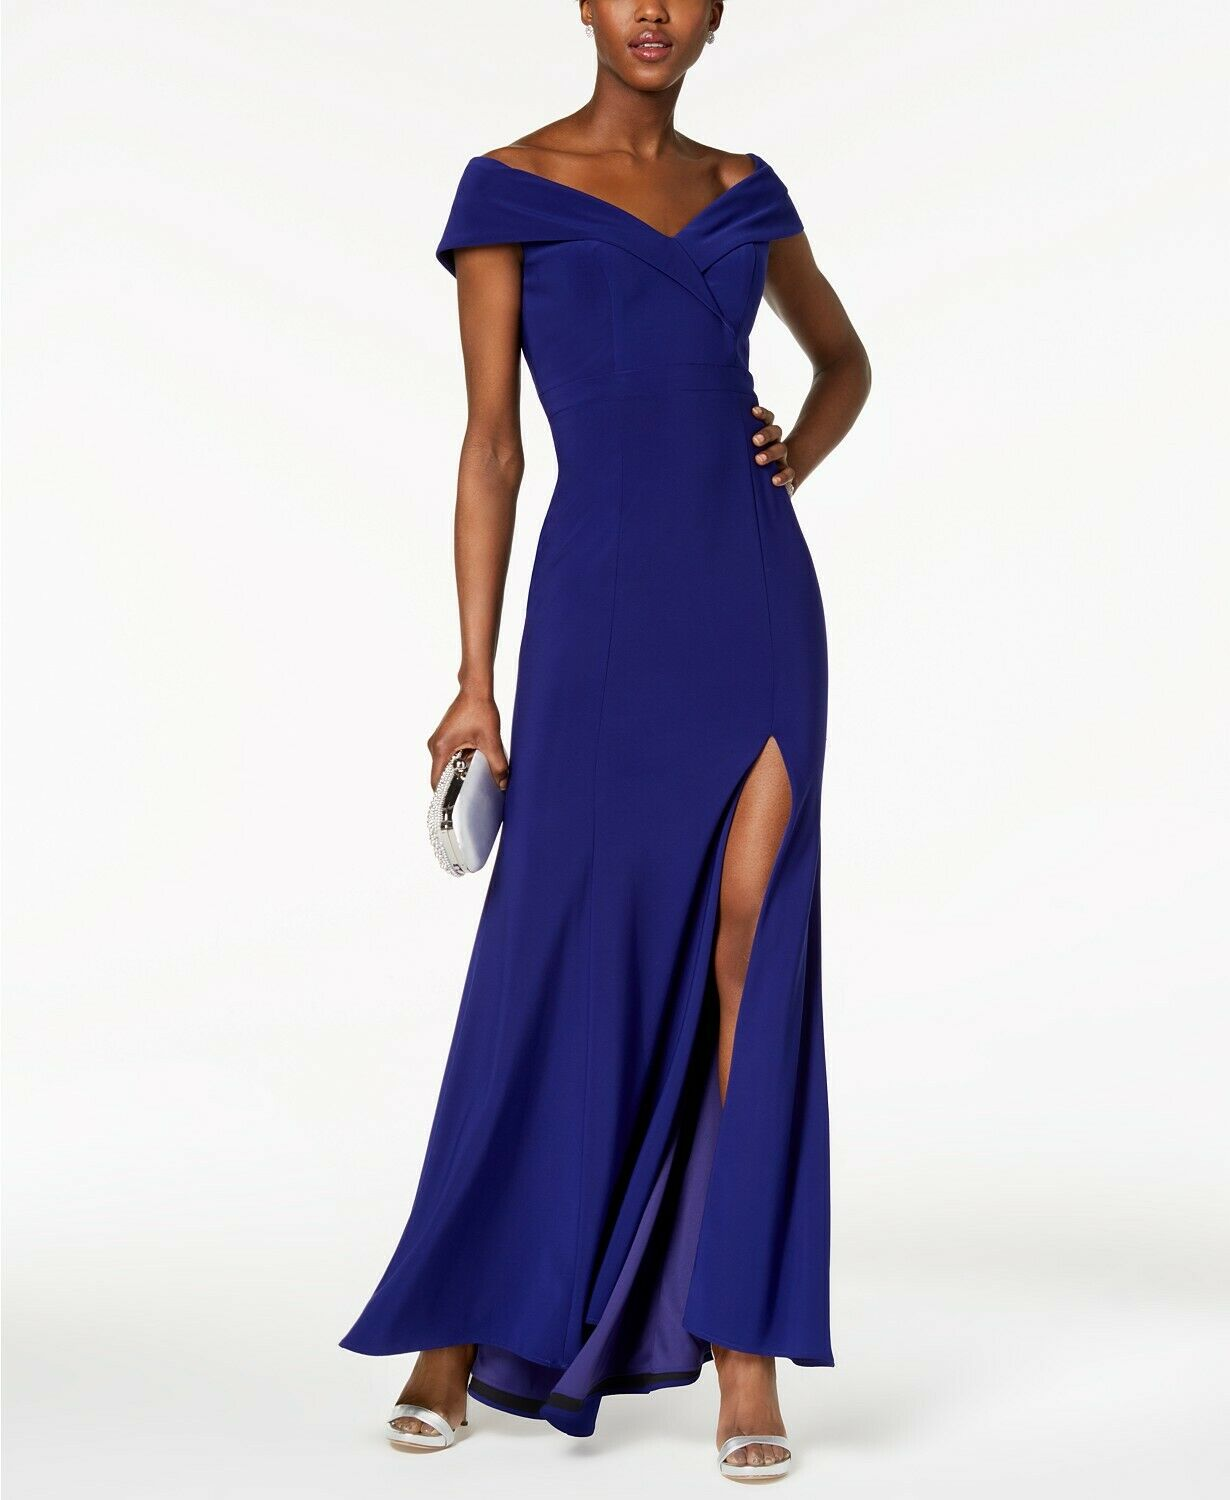 XSCAPE damen Blau OFF SHOULDER SIDE SLIT EVENING FORMAL DRESS GOWN Größe 2